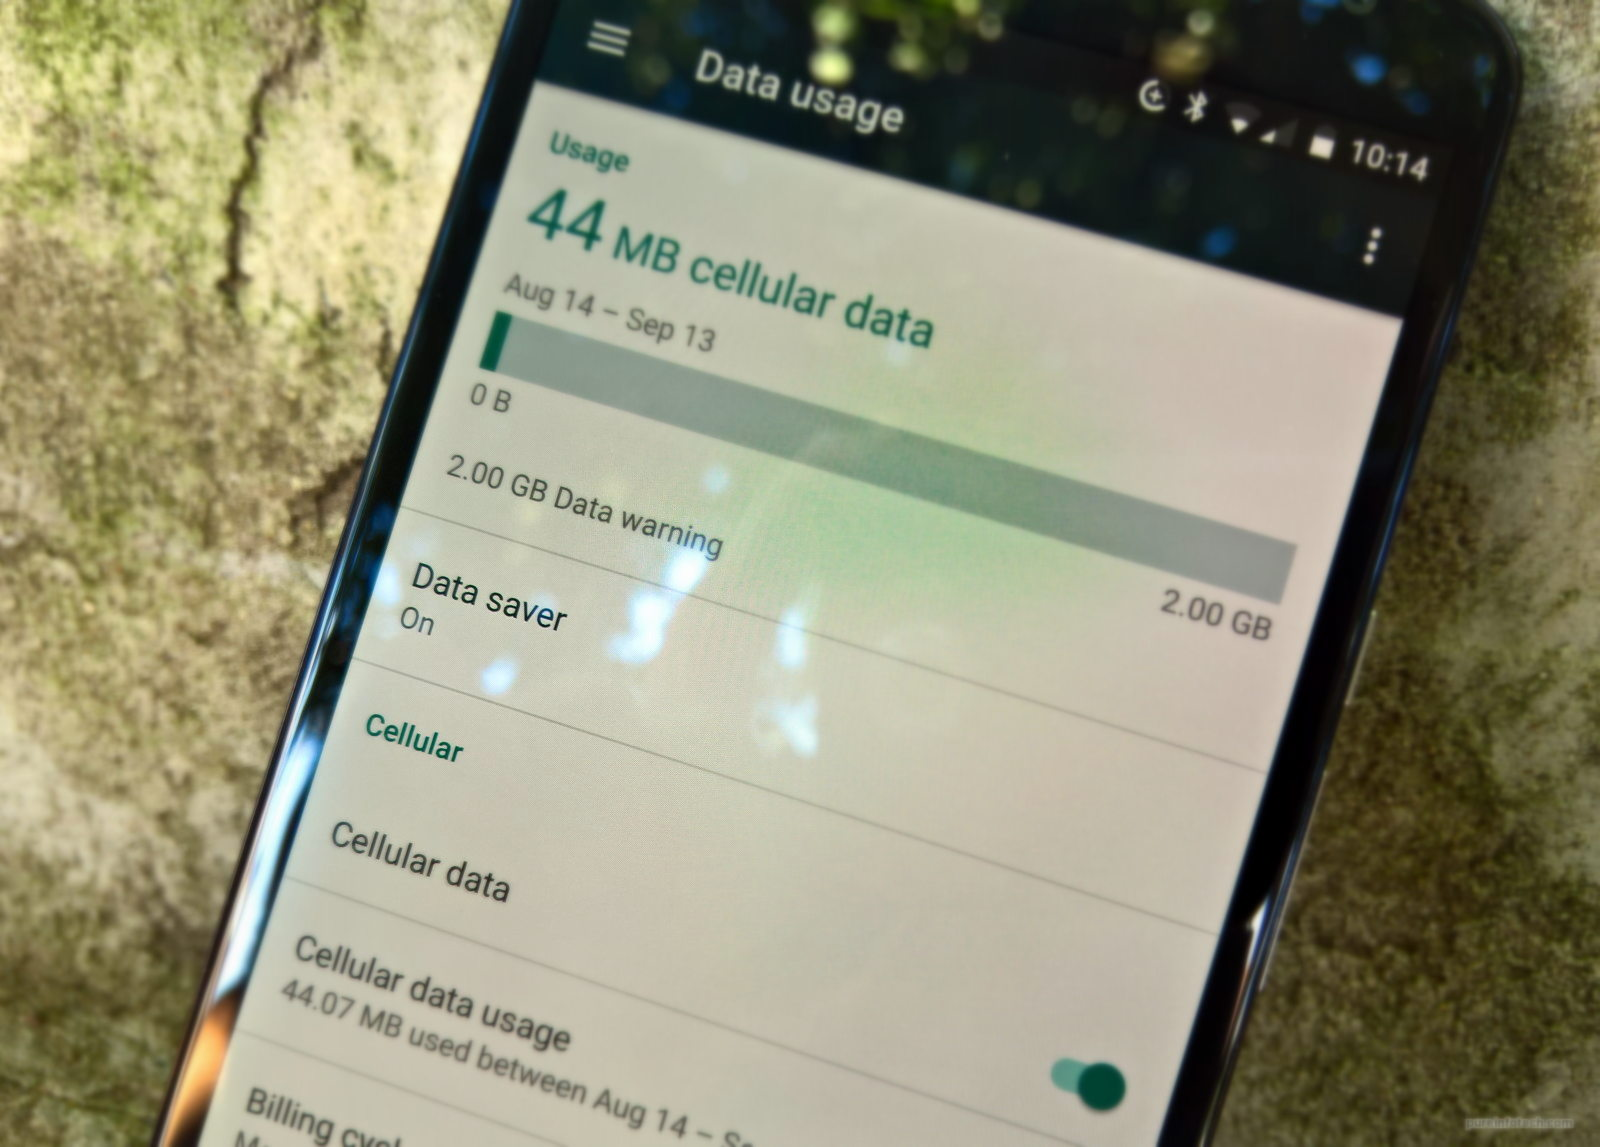 Prevent mobile data over usage with Data saver on Android Nougat